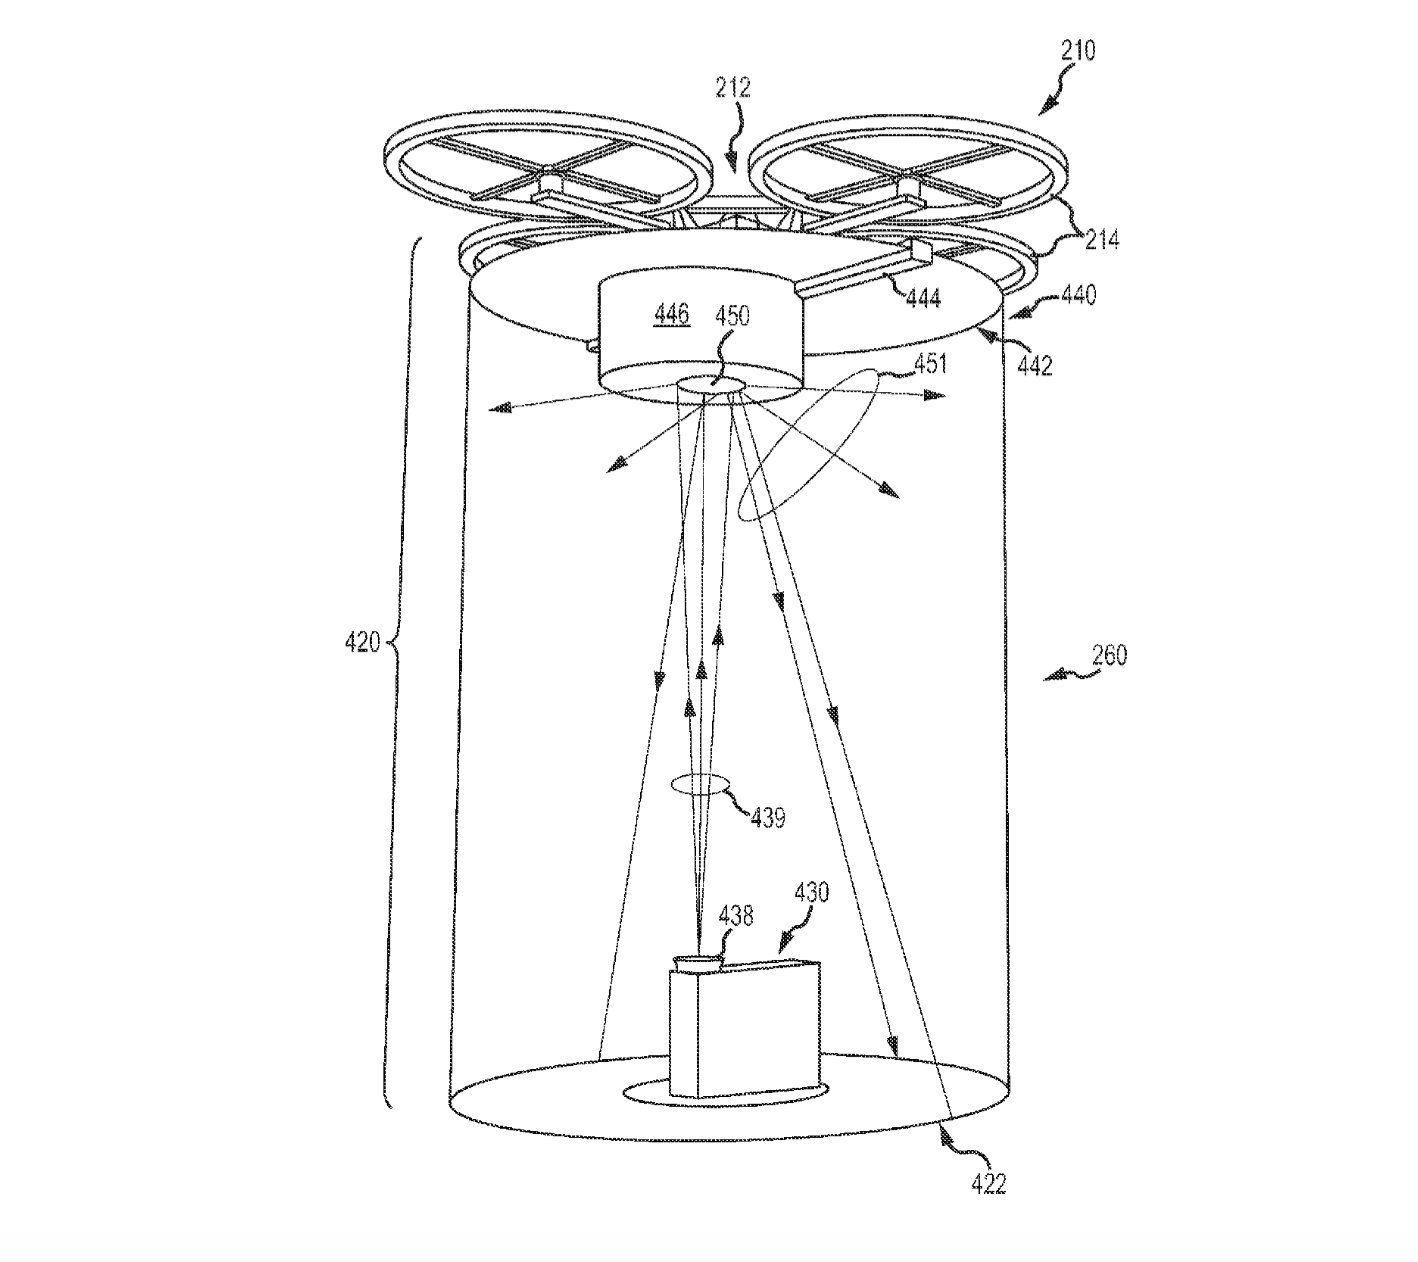 Disney Files For Patent For Projector To Work With Drones